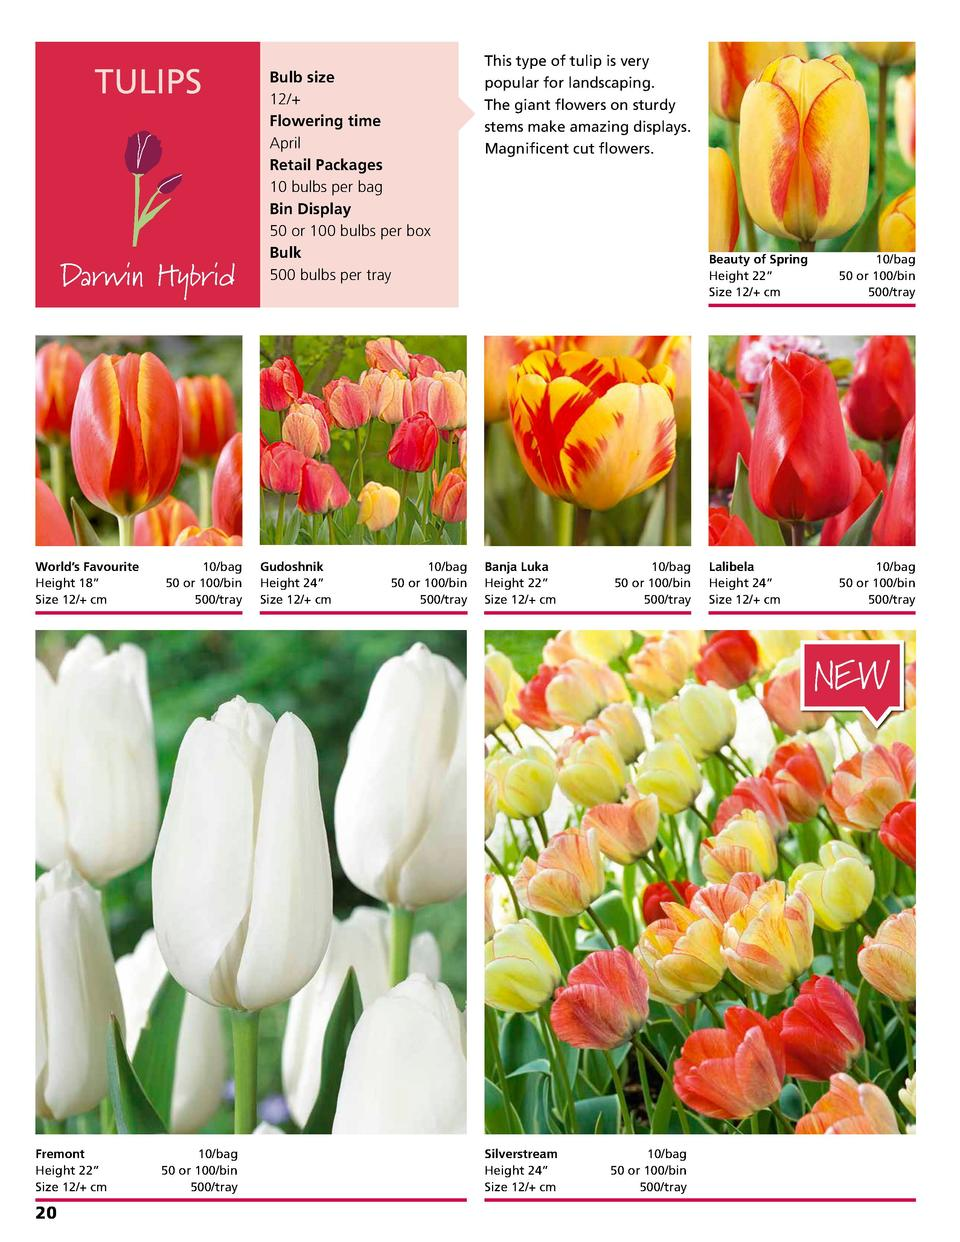 TULIPS  Darwin Hybrid  World   s Favourite  Height 18      Size 12   cm    10 bag 50 or 100 bin 500 tray  Bulb size 12   F...